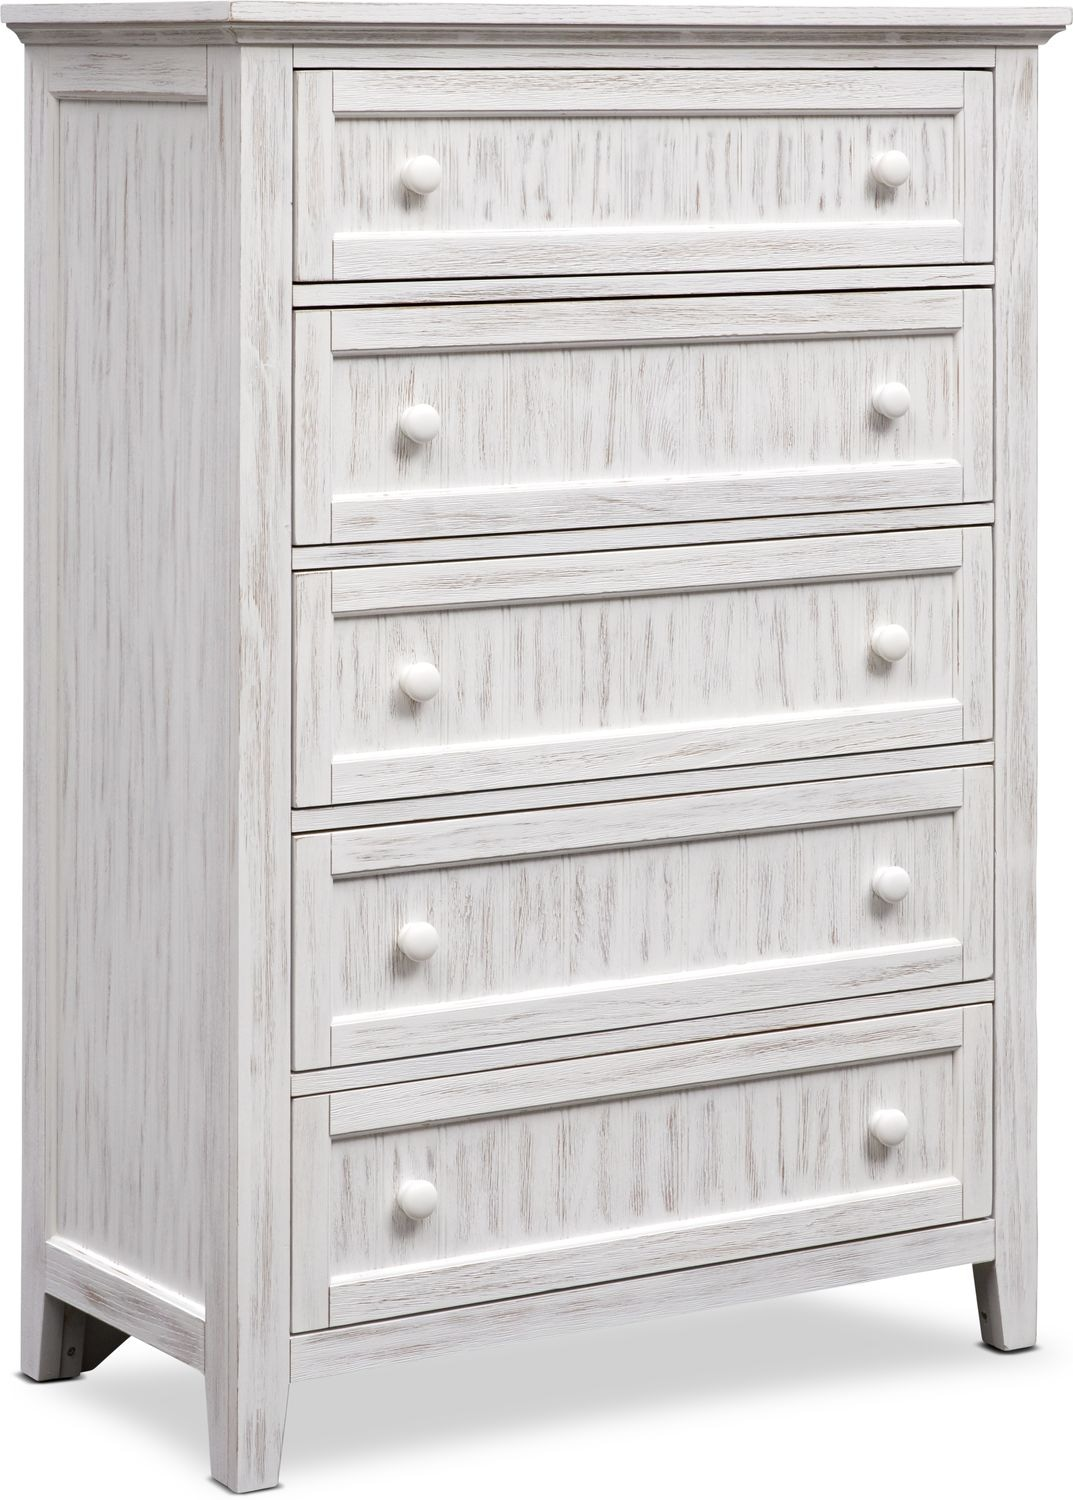 Bedroom Furniture - Sidney Chest